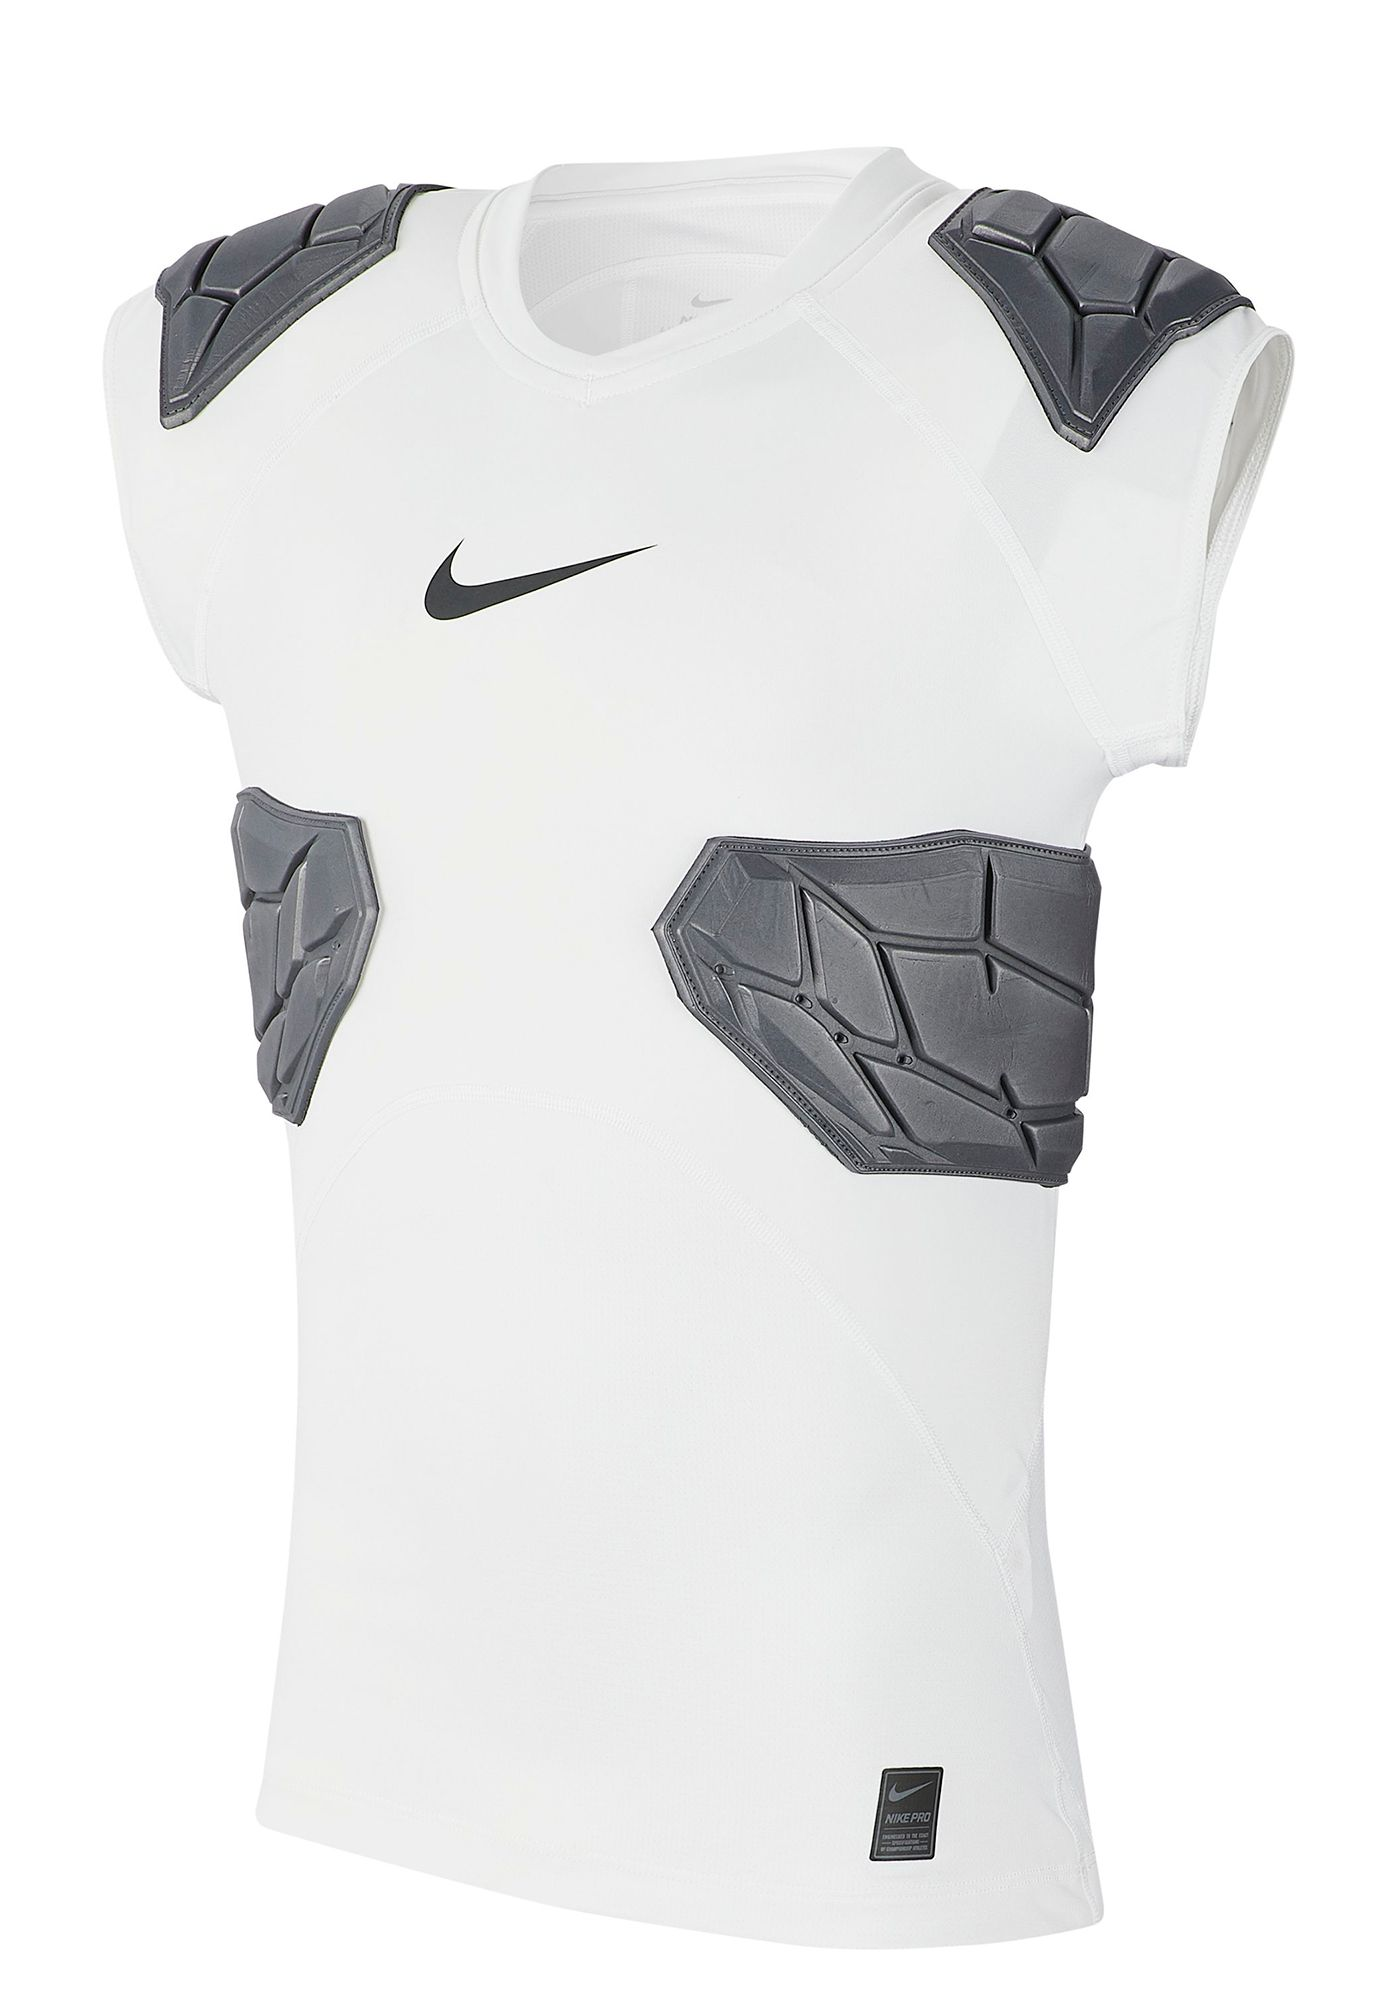 Nike Men's Pro Hyperstrong Sleeveless Football Shirt